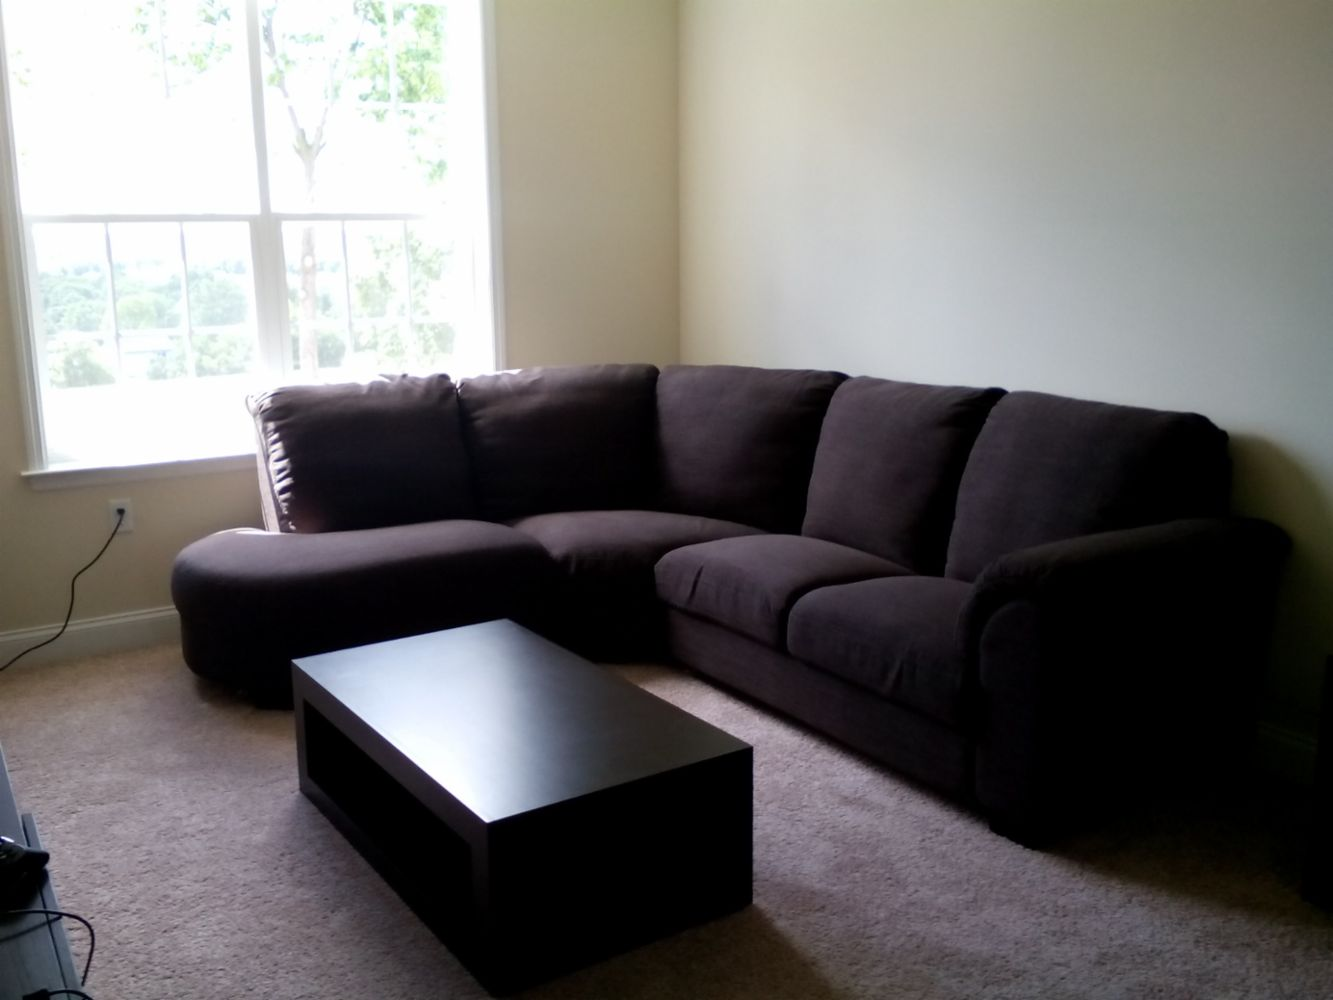 furniture assembly in hightstown nj s u0026j home services llc